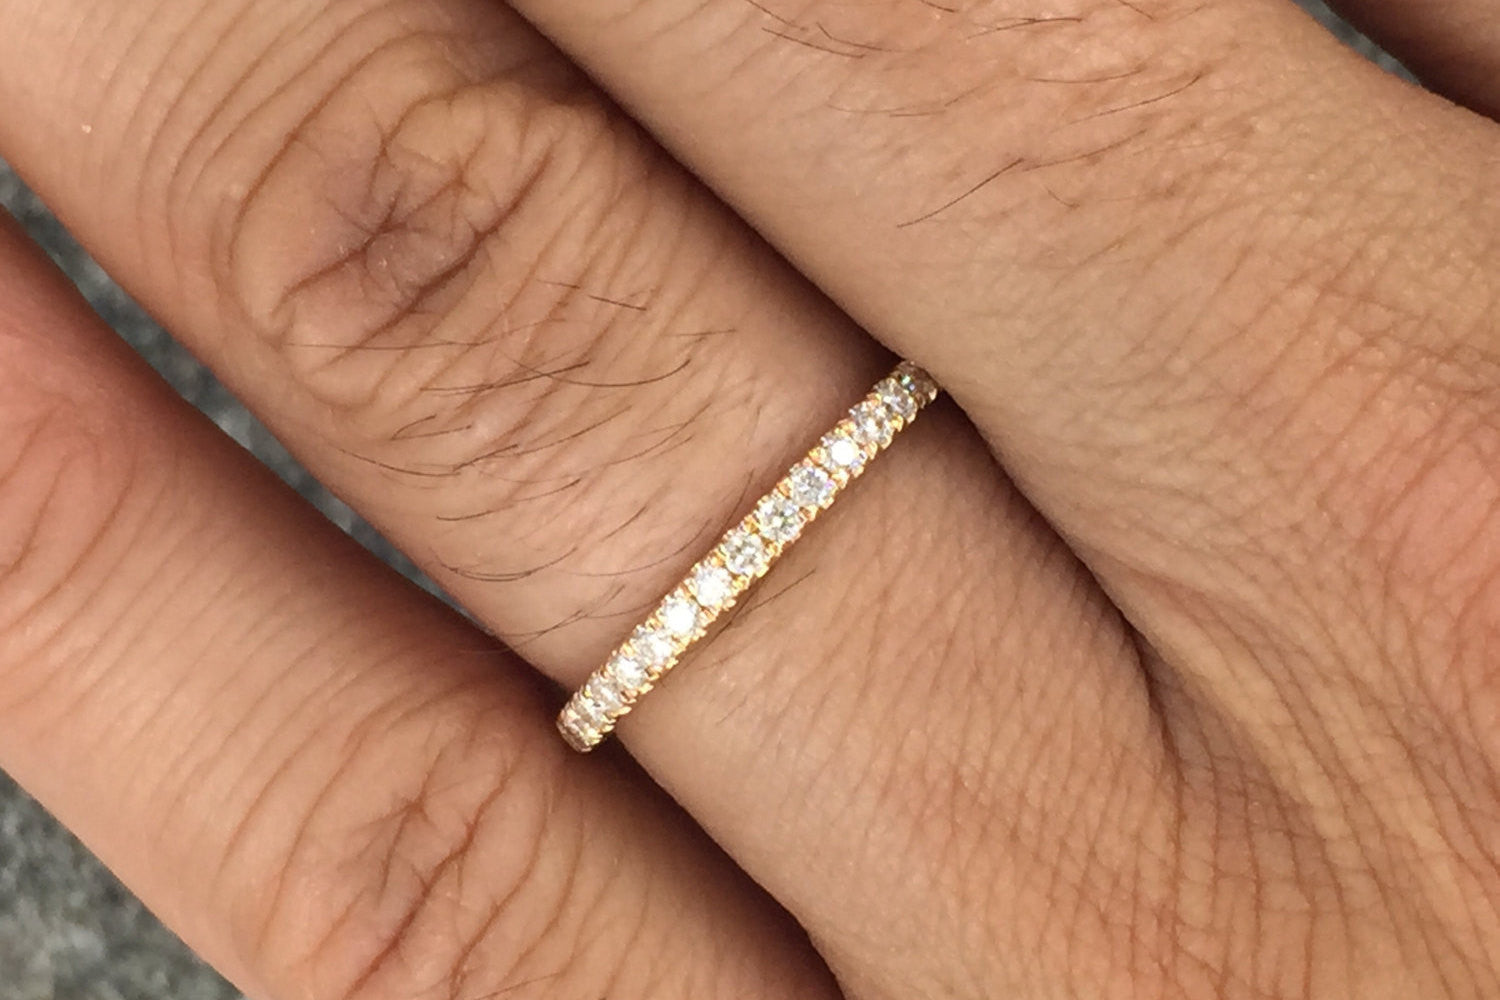 14k Rose Gold Dainty Thin Diamond Engagement Wedding Band Ring Brilliant Cut - Brilliant Facets